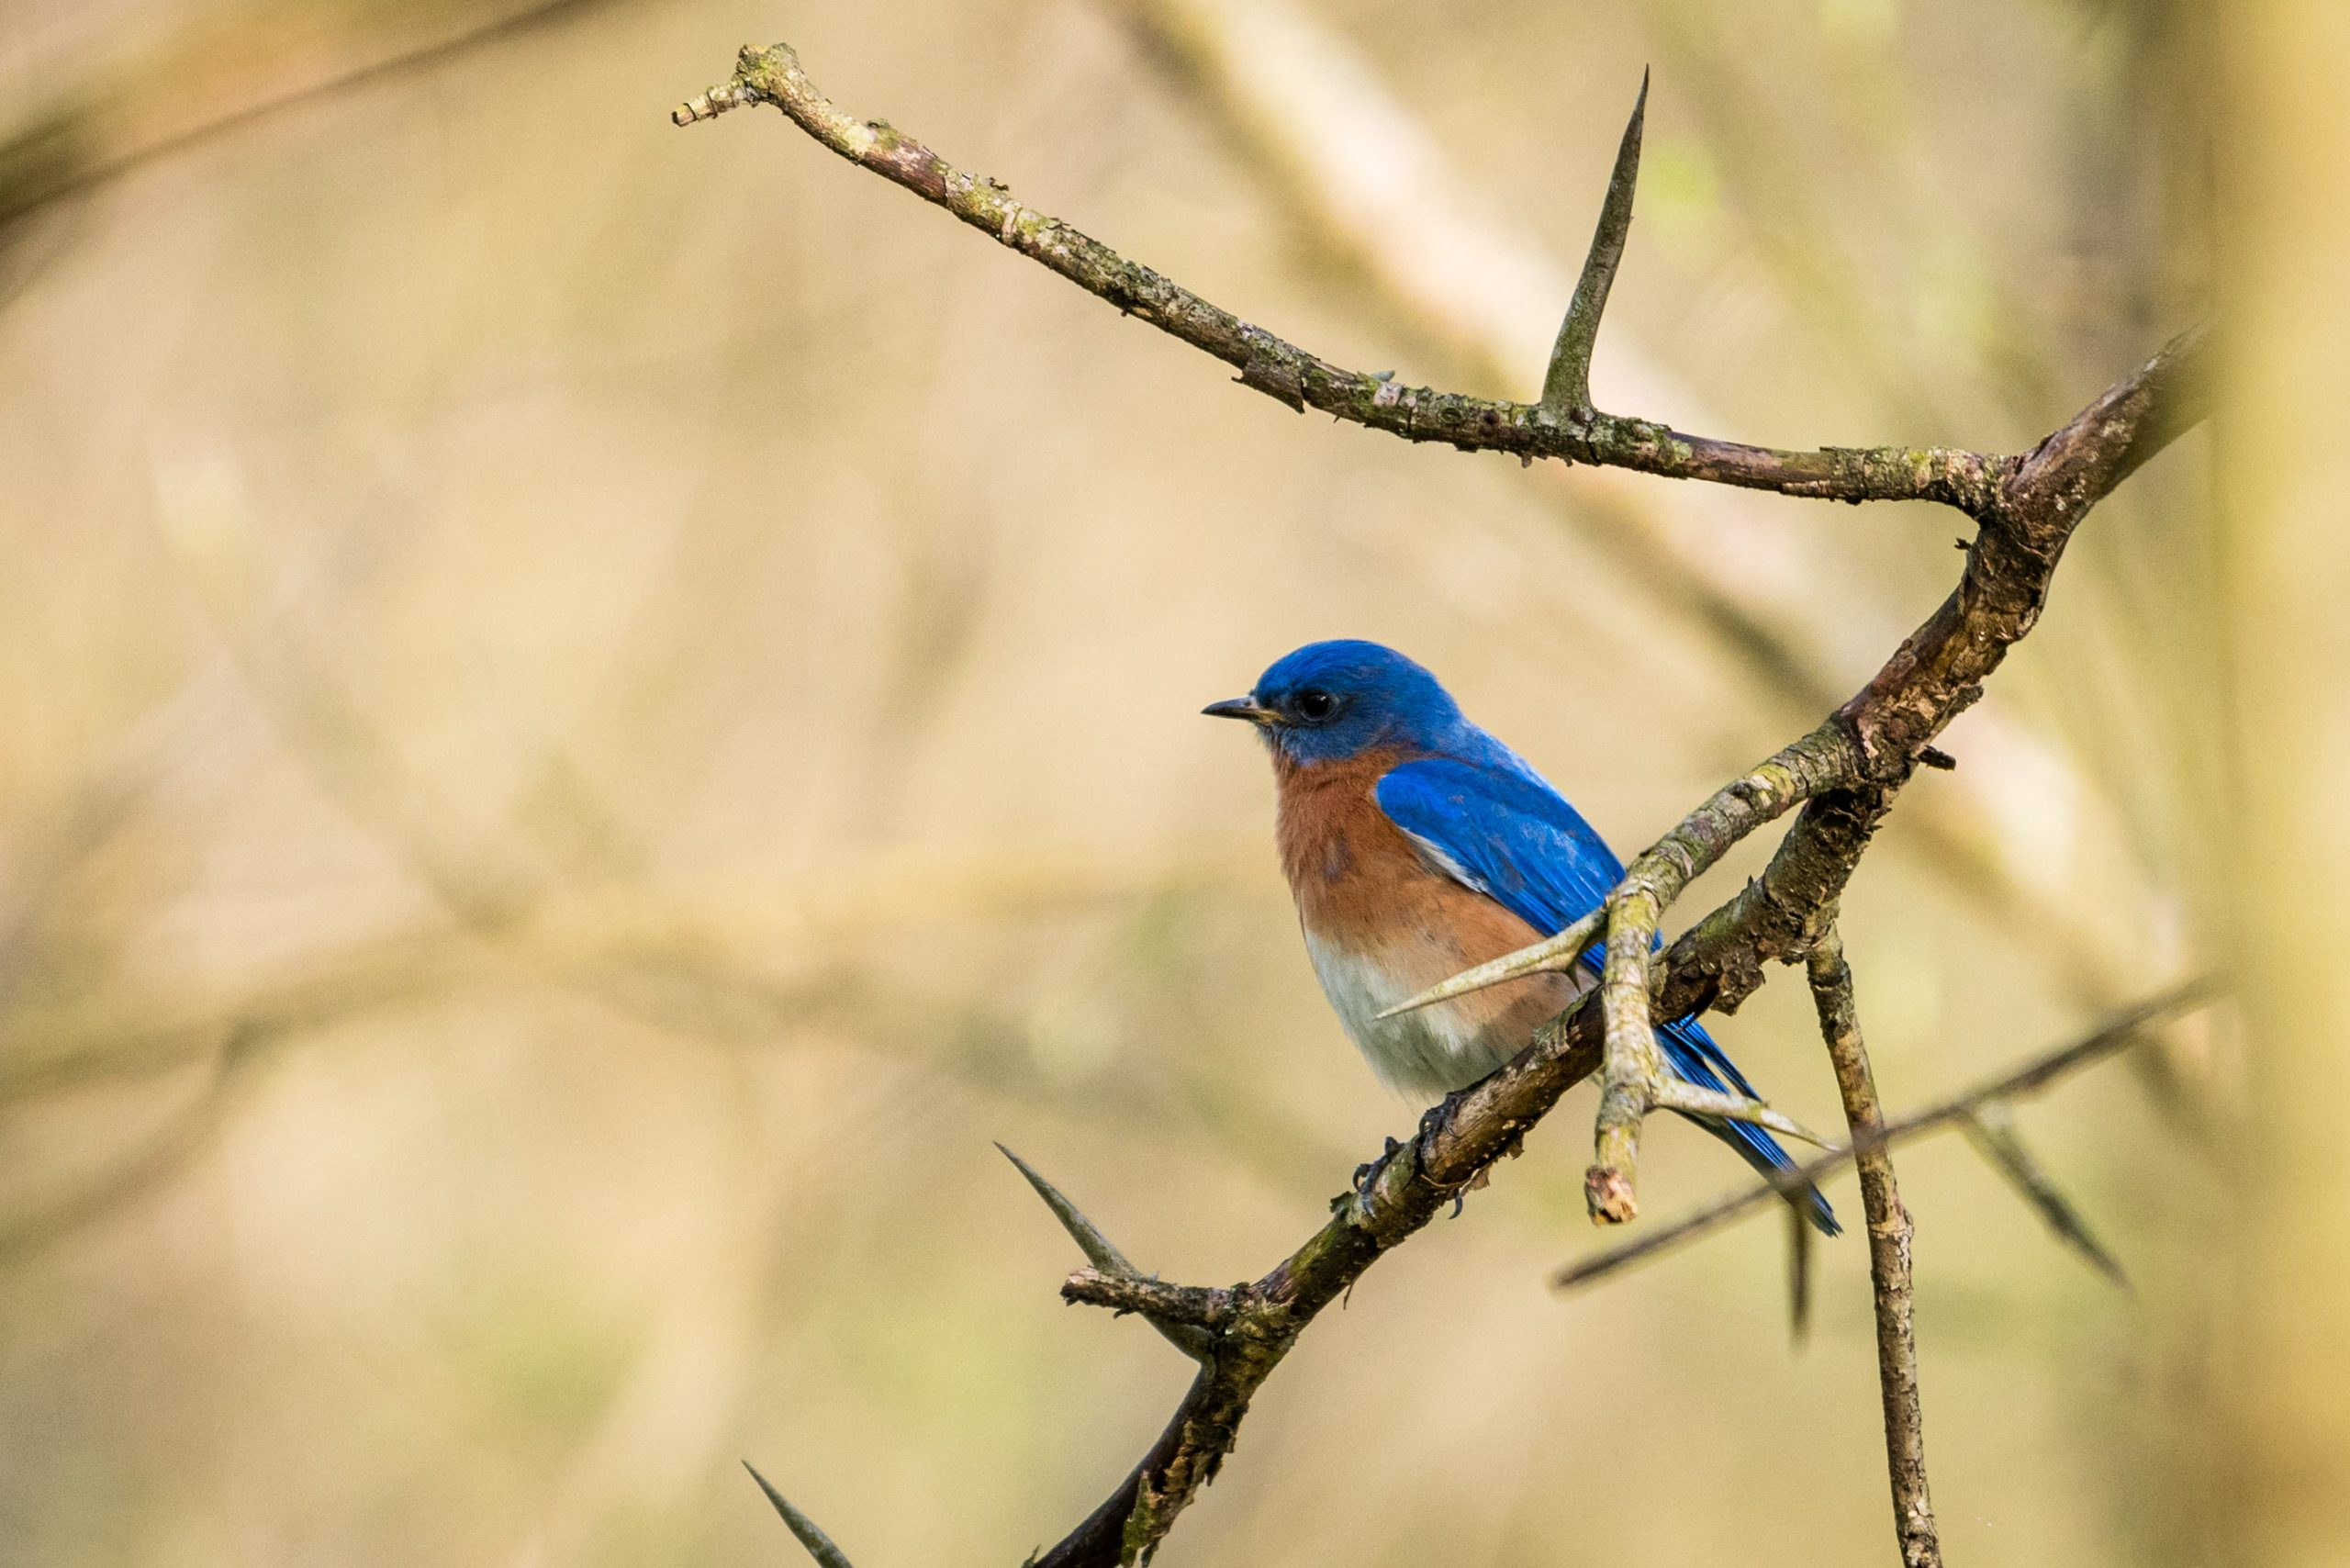 An eastern bluebird perches on a spiky tree branch in Glenwood Gardens.